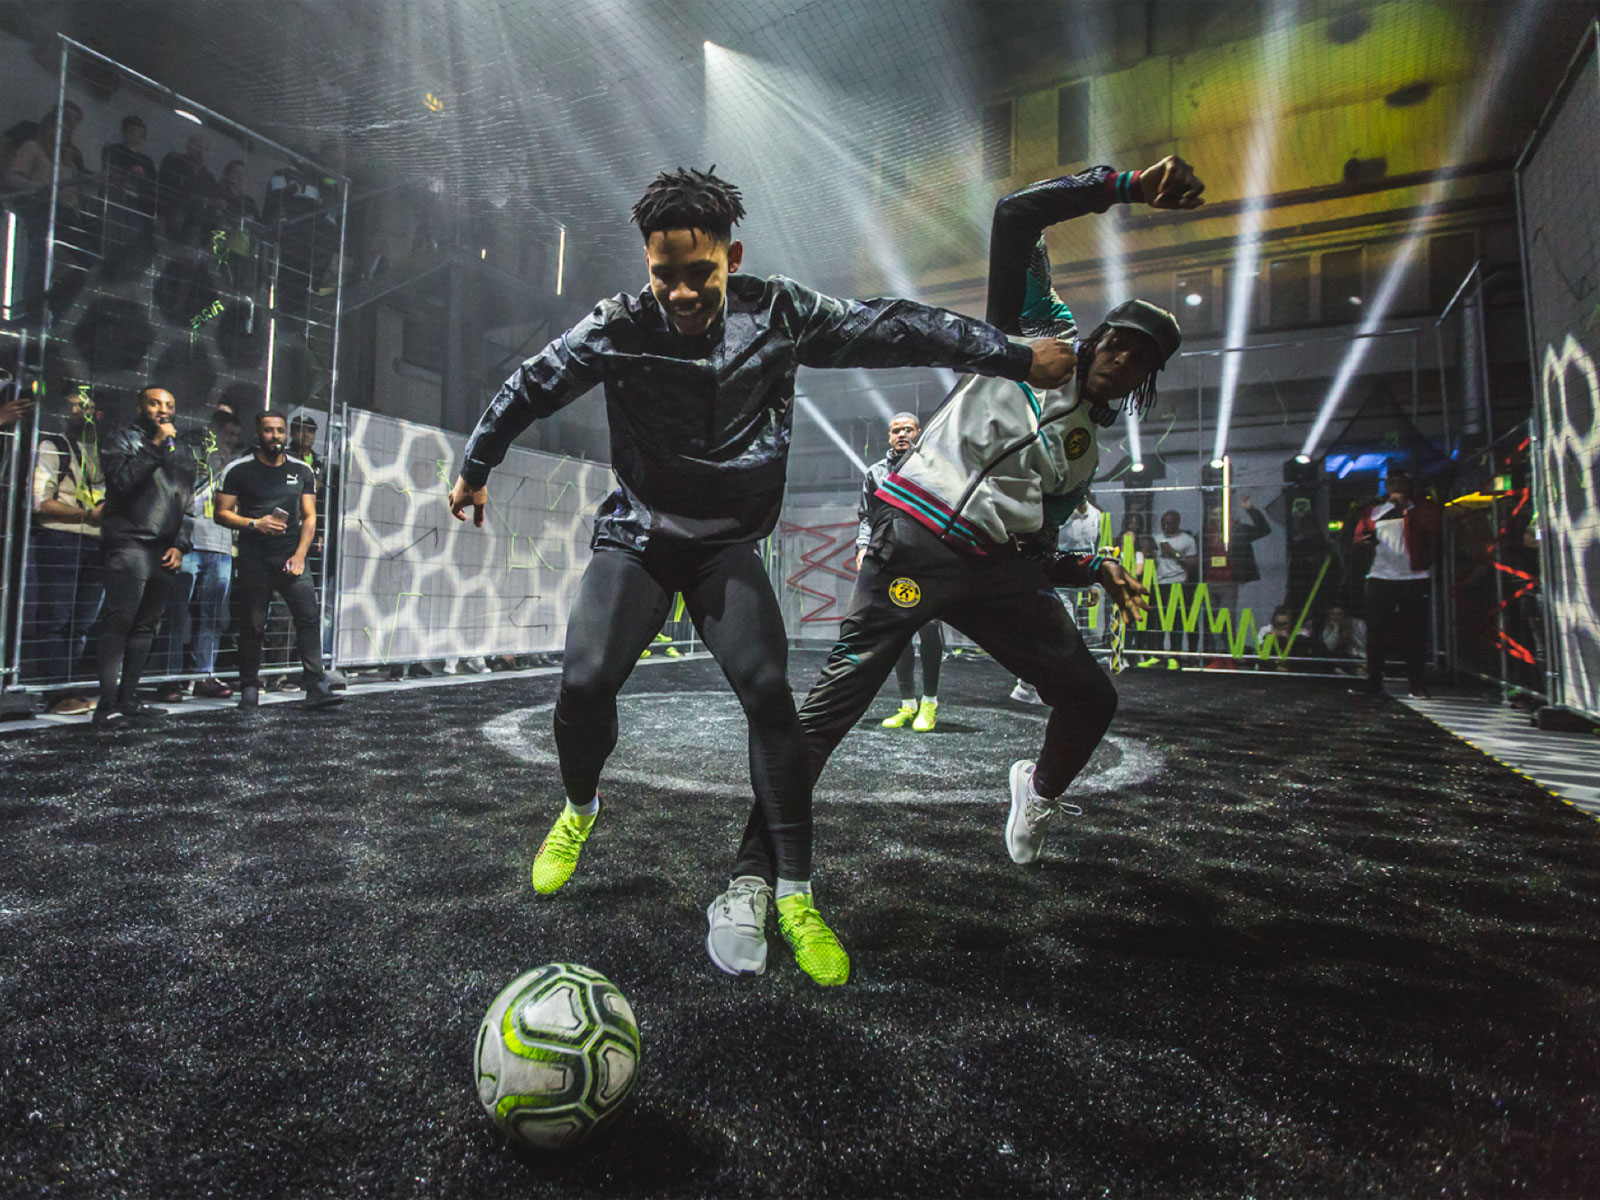 Puma launches the new Future boots